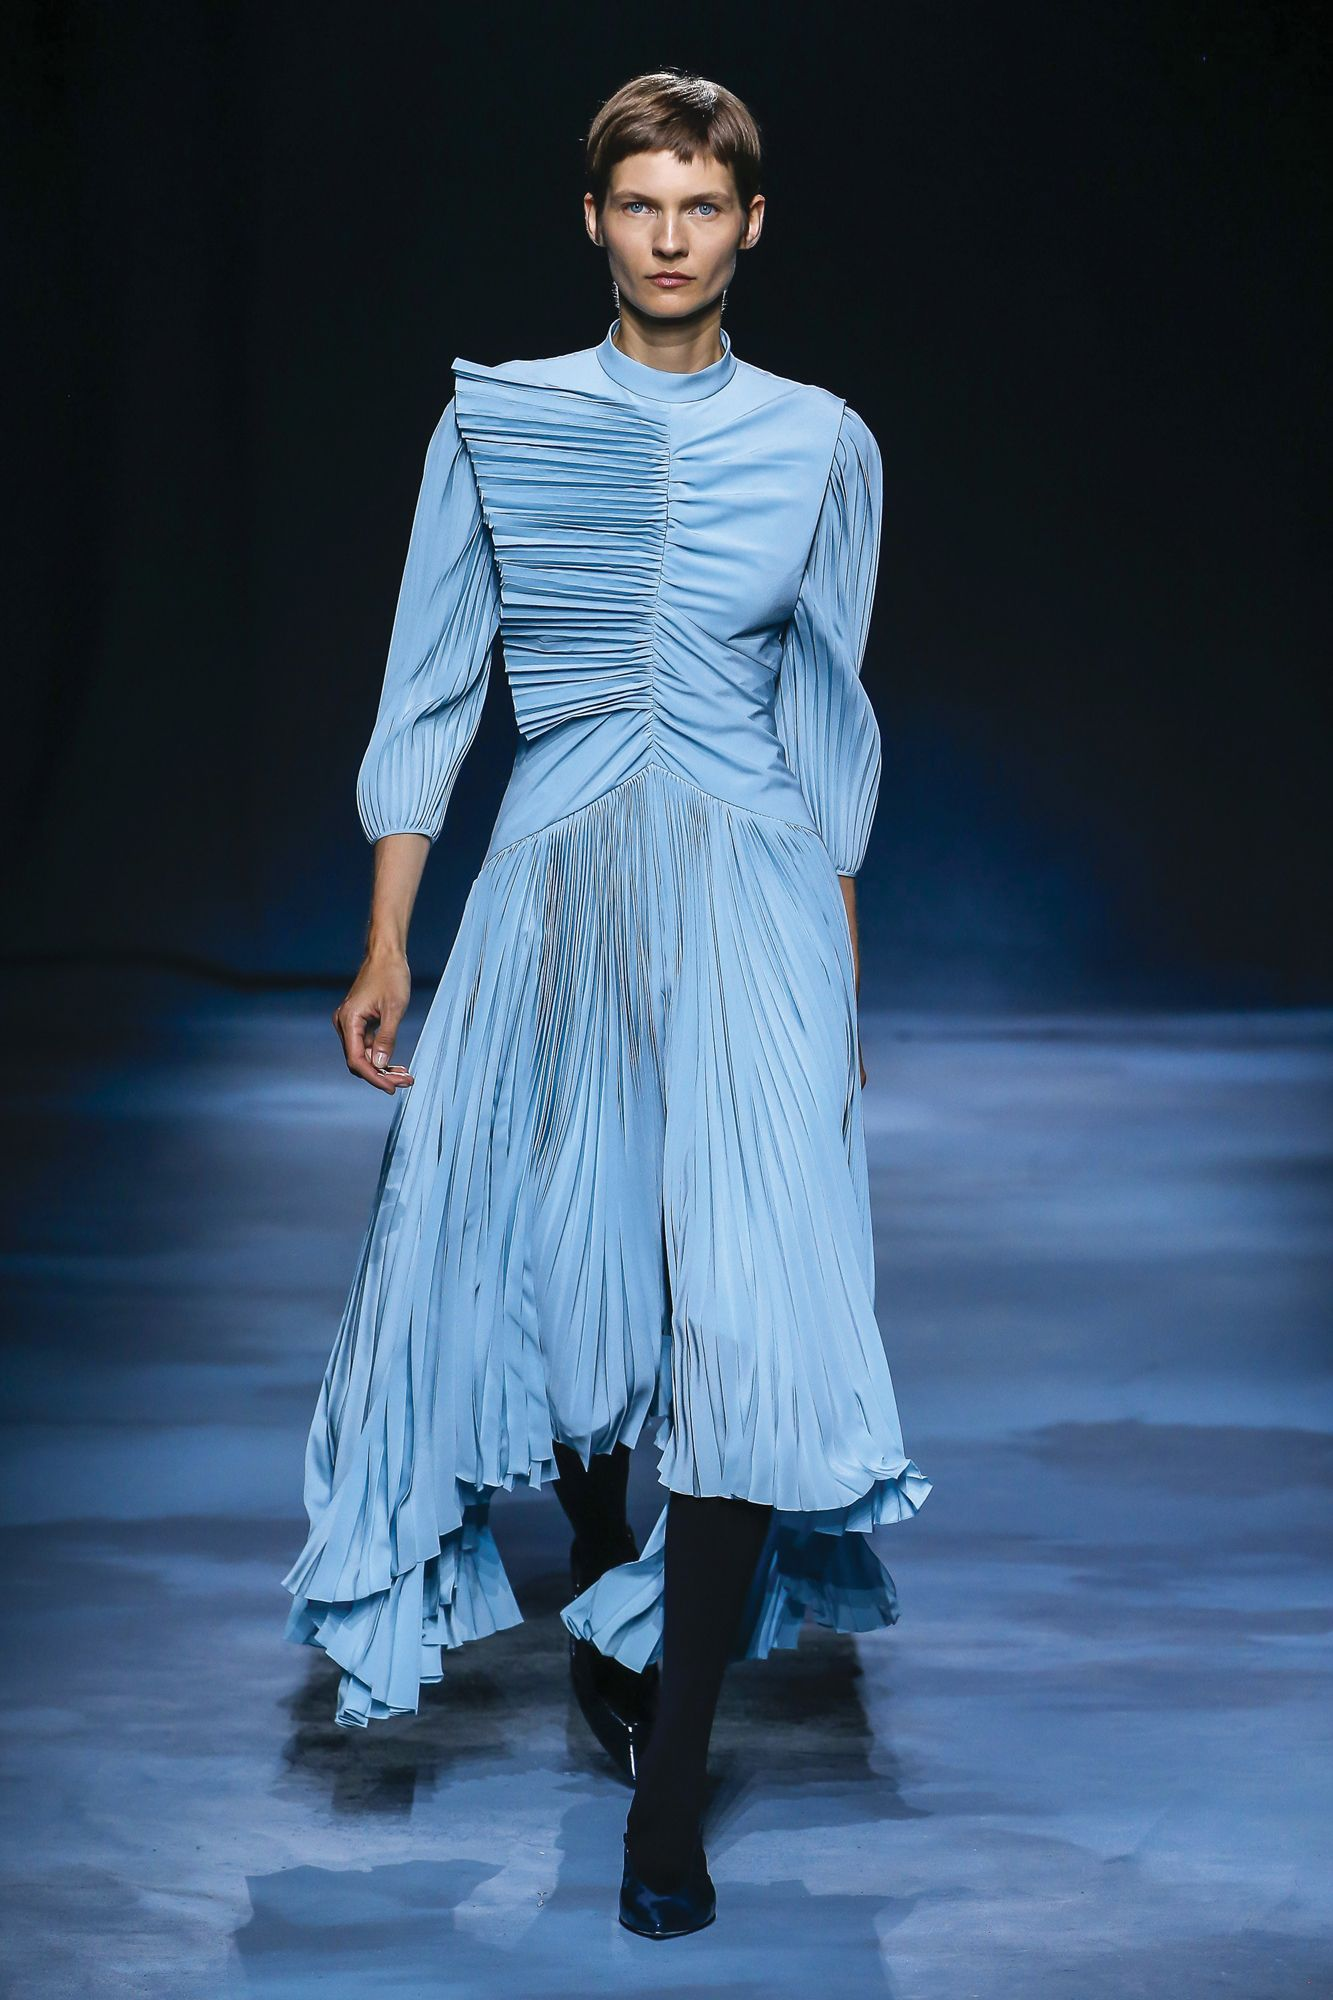 GIVENCHY | Asymmetrical pleated dress from the spring/summer 2019 runway